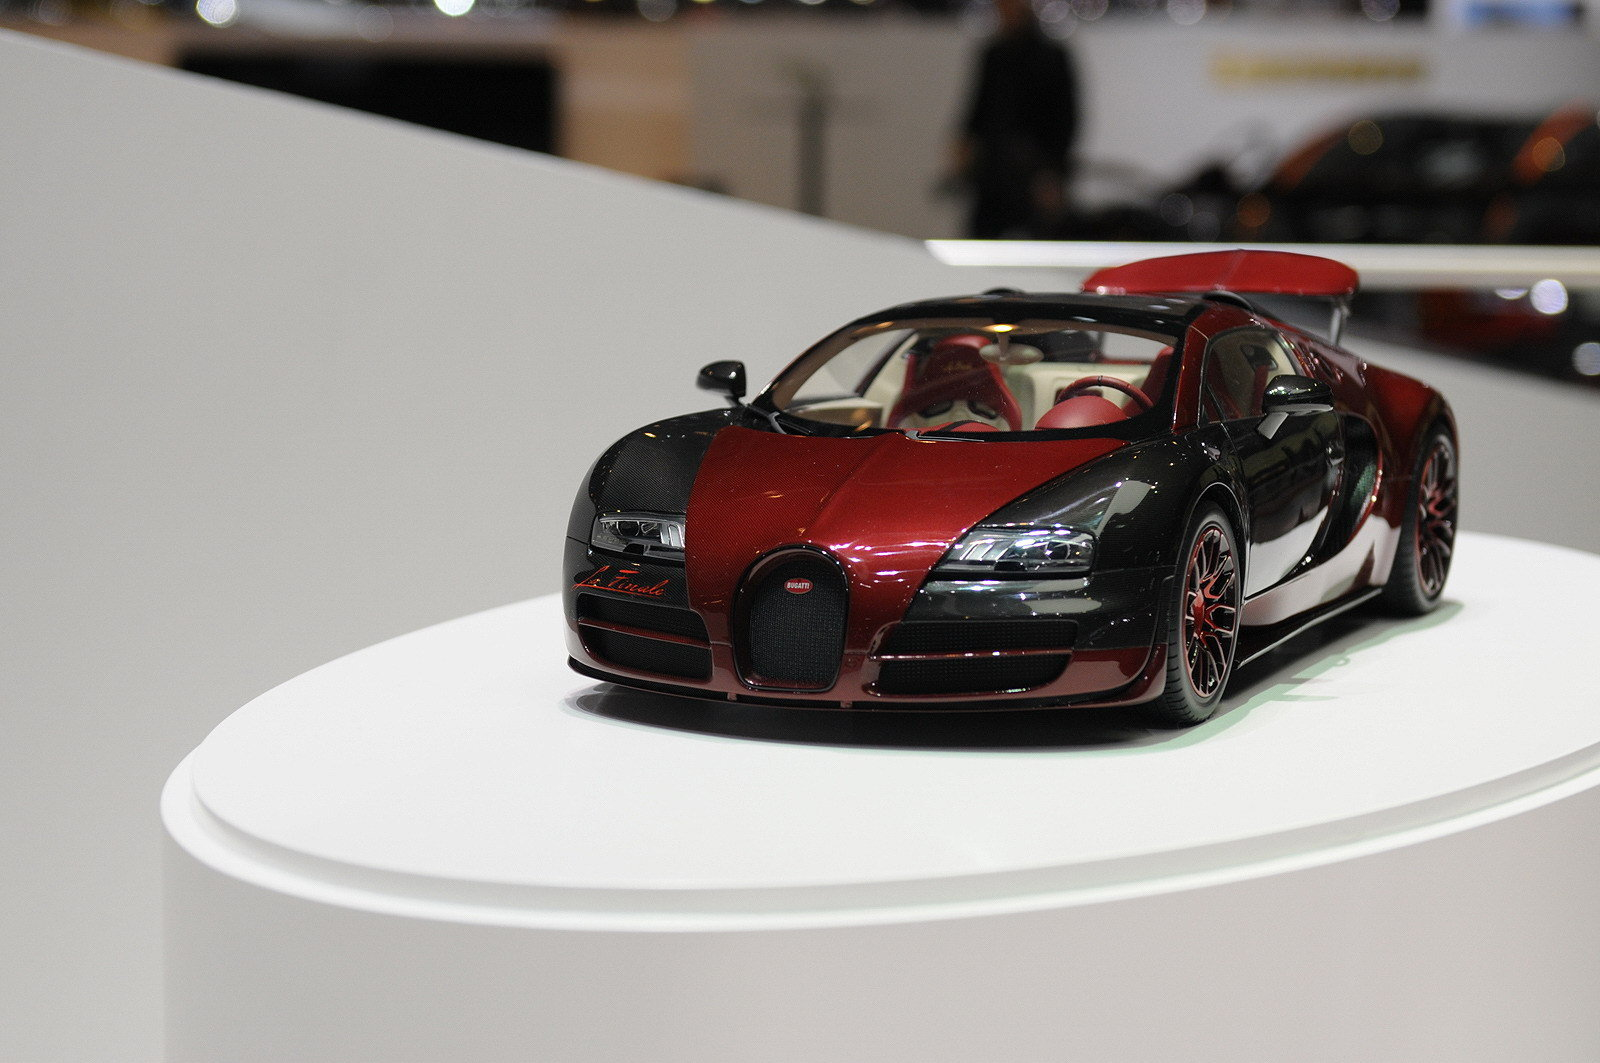 2015 bugatti veyron grand sport vitesse la finale picture 622107 car review top speed. Black Bedroom Furniture Sets. Home Design Ideas